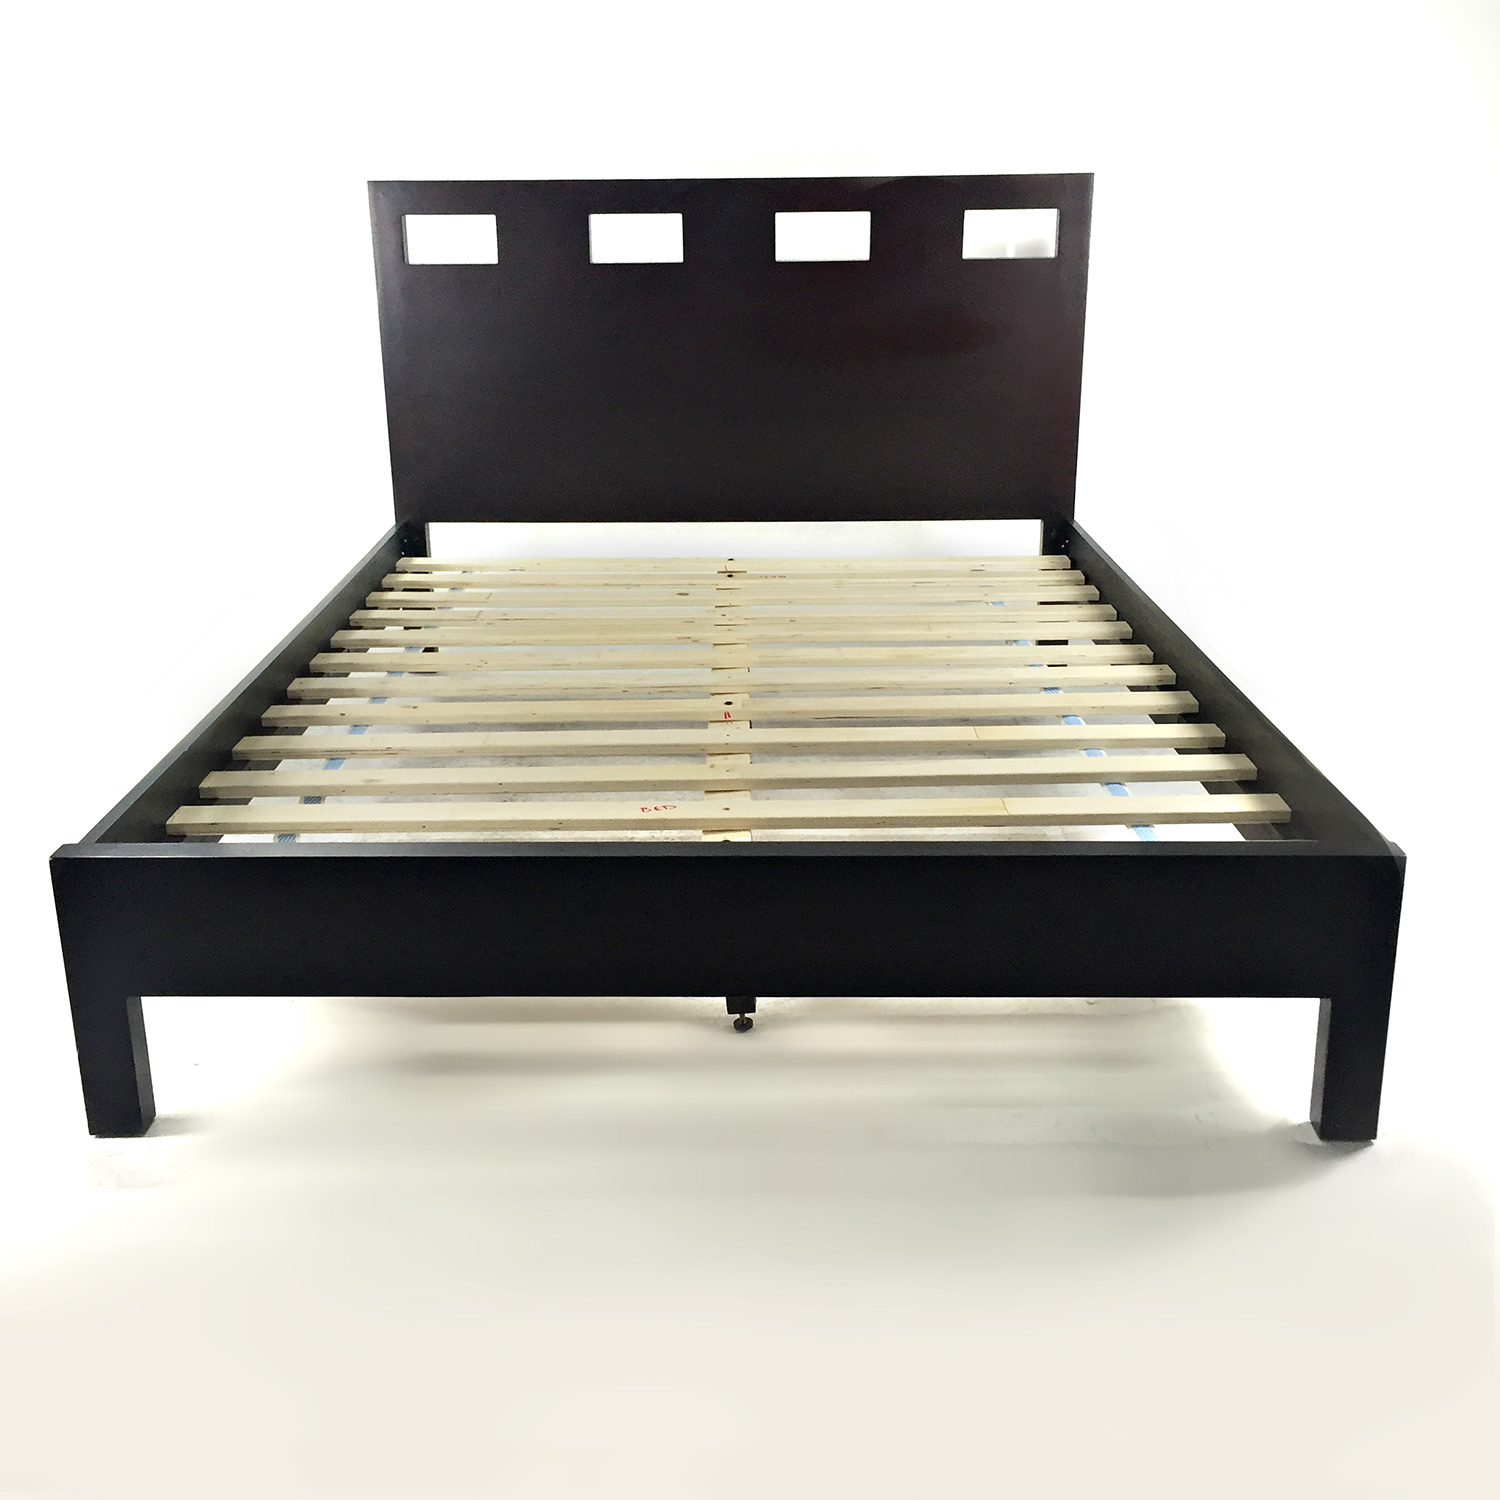 Sleepys Sleepys Brown Wool Queen Bed Frame nyc